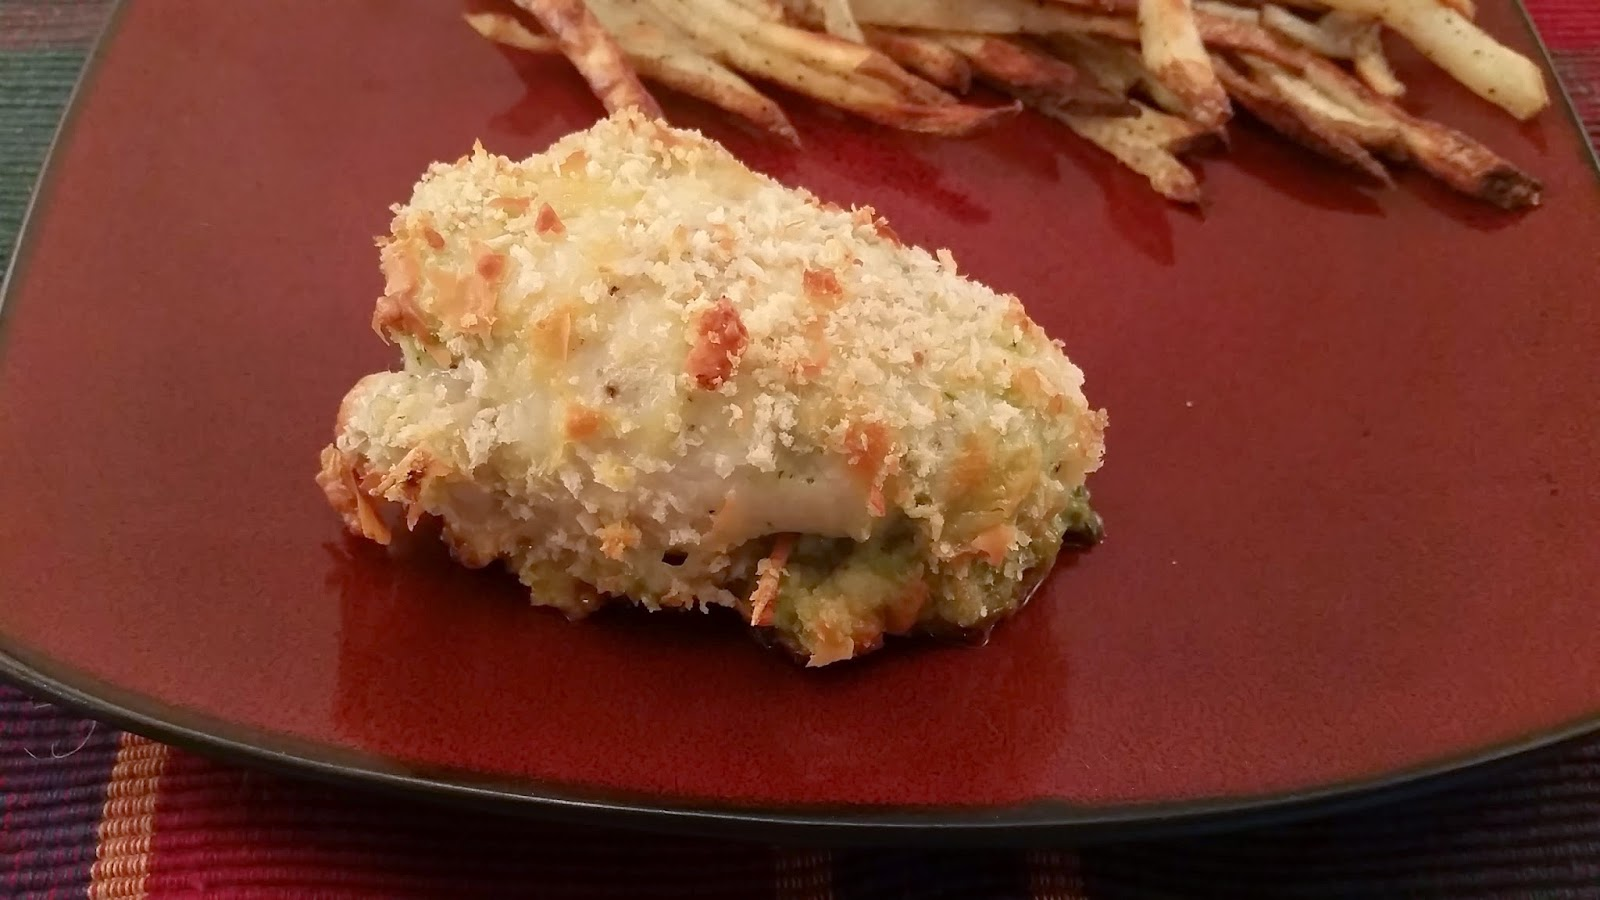 Pesto stuffed chicken thighs. Coated with panko and parmesan. Ready to eat!! Click for recipe.